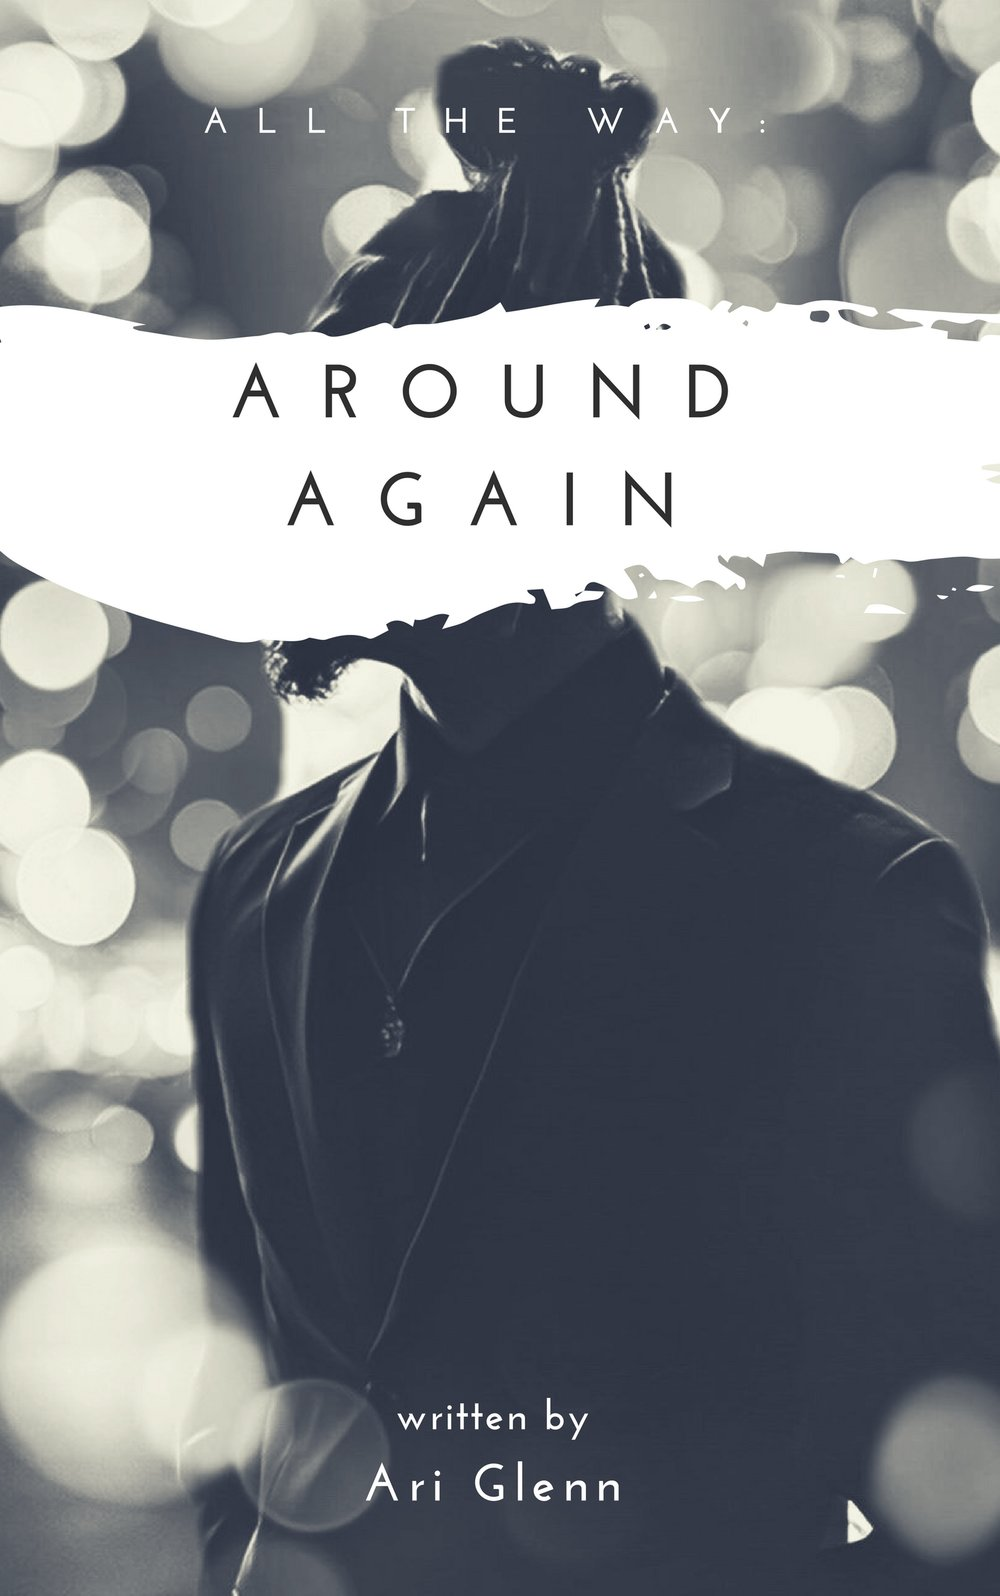 ATW: AROUND AGAIN - — The Smith family is back, and is all grown up. Ryan and Gabriel are still as in love as ever. They're no strangers to dealing with strife, and difficult situations in their marriage, so what's one more as her health has steadily on the decline. As they balance difficulties resulting from Ryan's epilepsy, they watch from the not so far as MJ, Gabe, and Gia navigate their budding lives.